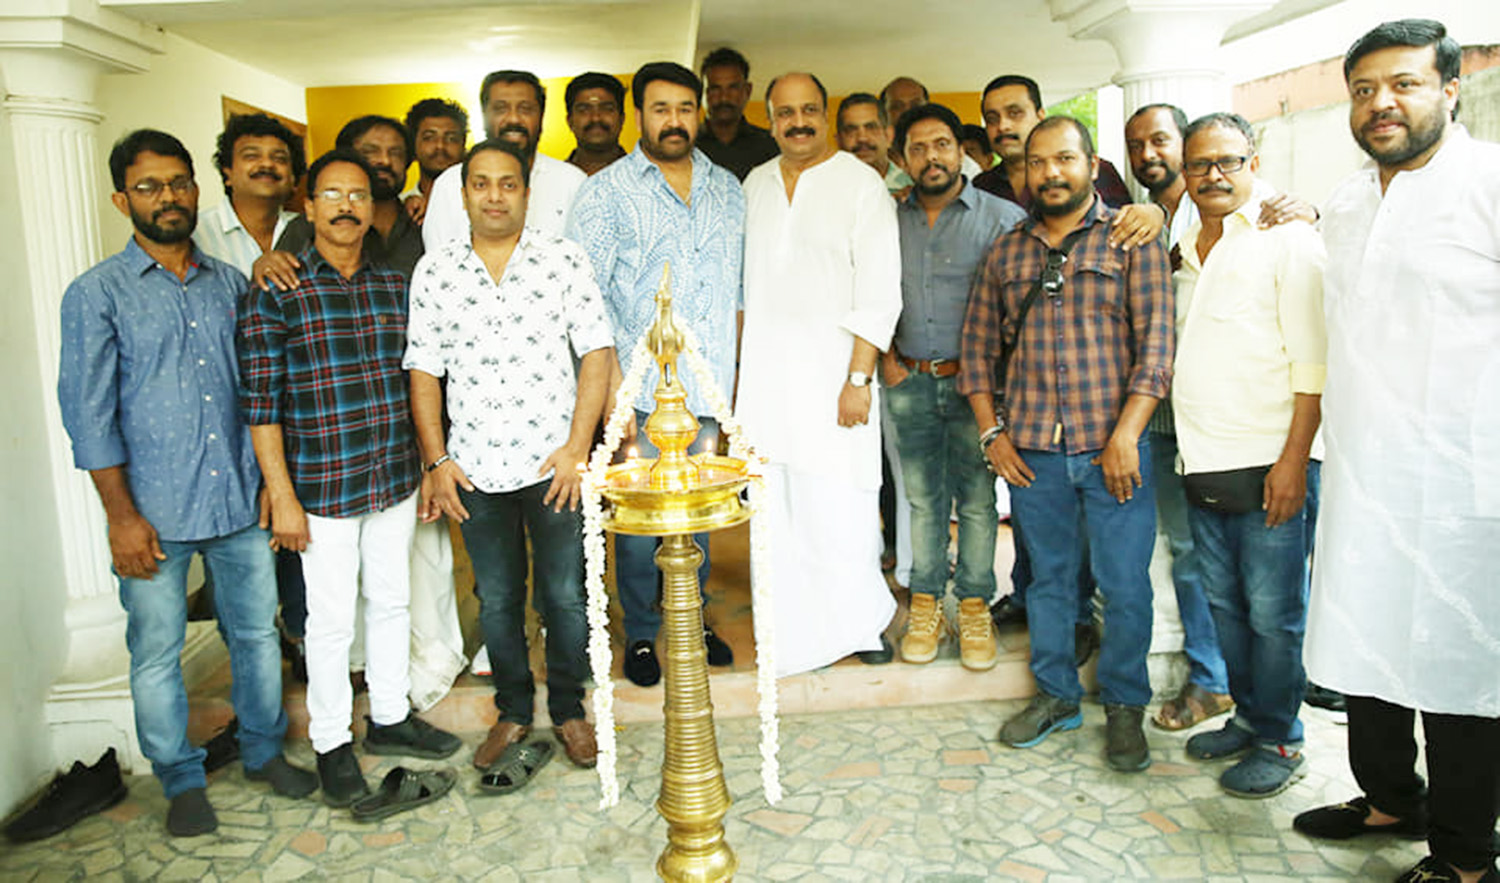 big brother,big brother pooja stills,mohanlal,mohanlal director siddique new movie,mohanlal at big brother pooja function,lalettan at big brother pooja ceremony,big brother malayalam movie,big brother movie updates